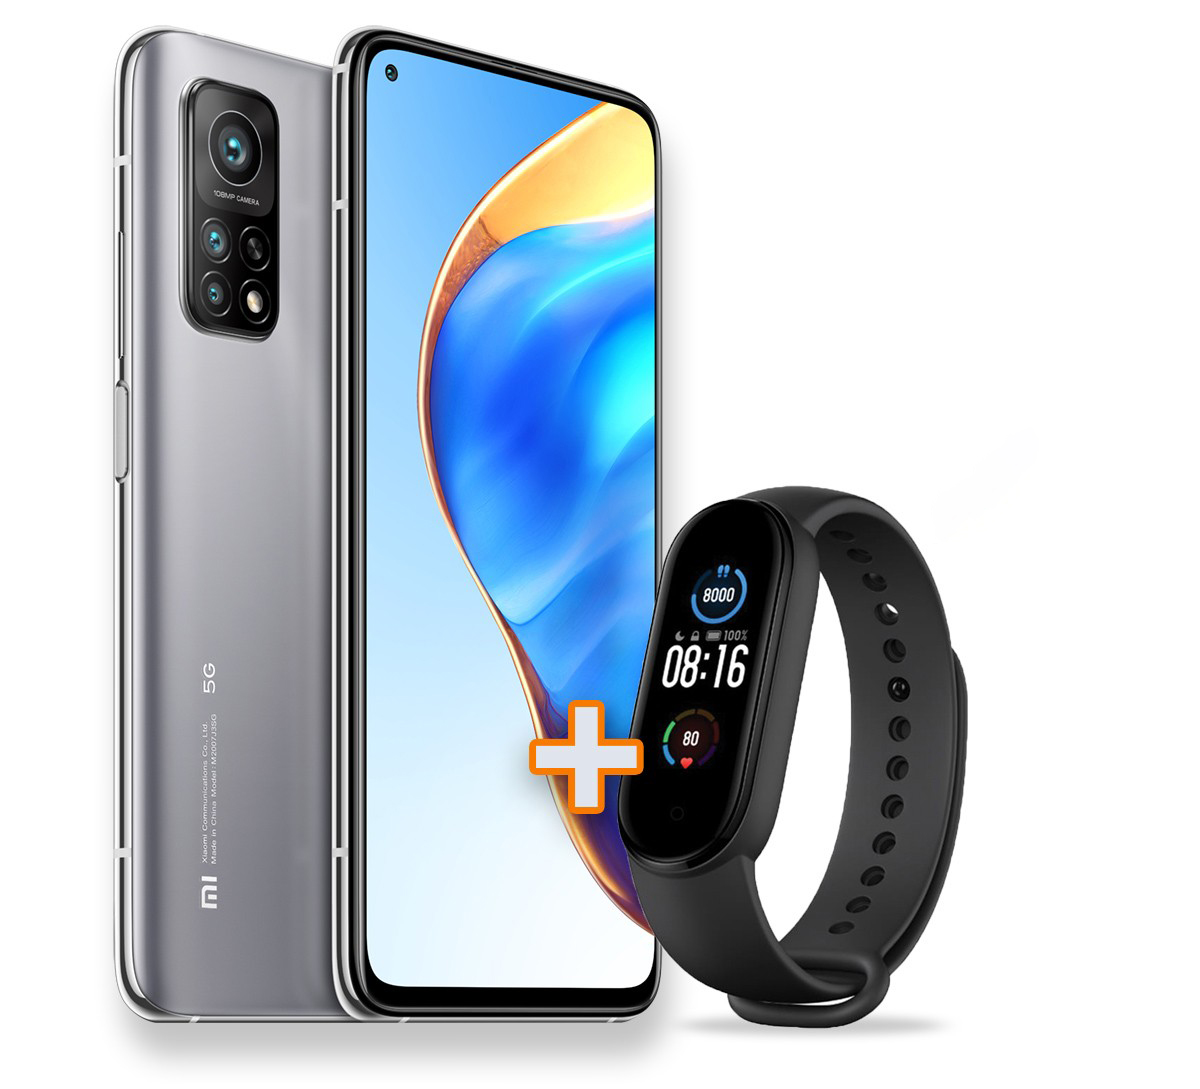 Mi 10T Pro 5G 8GB+128GB, Lunar Silver + Mi Band 5 Kit